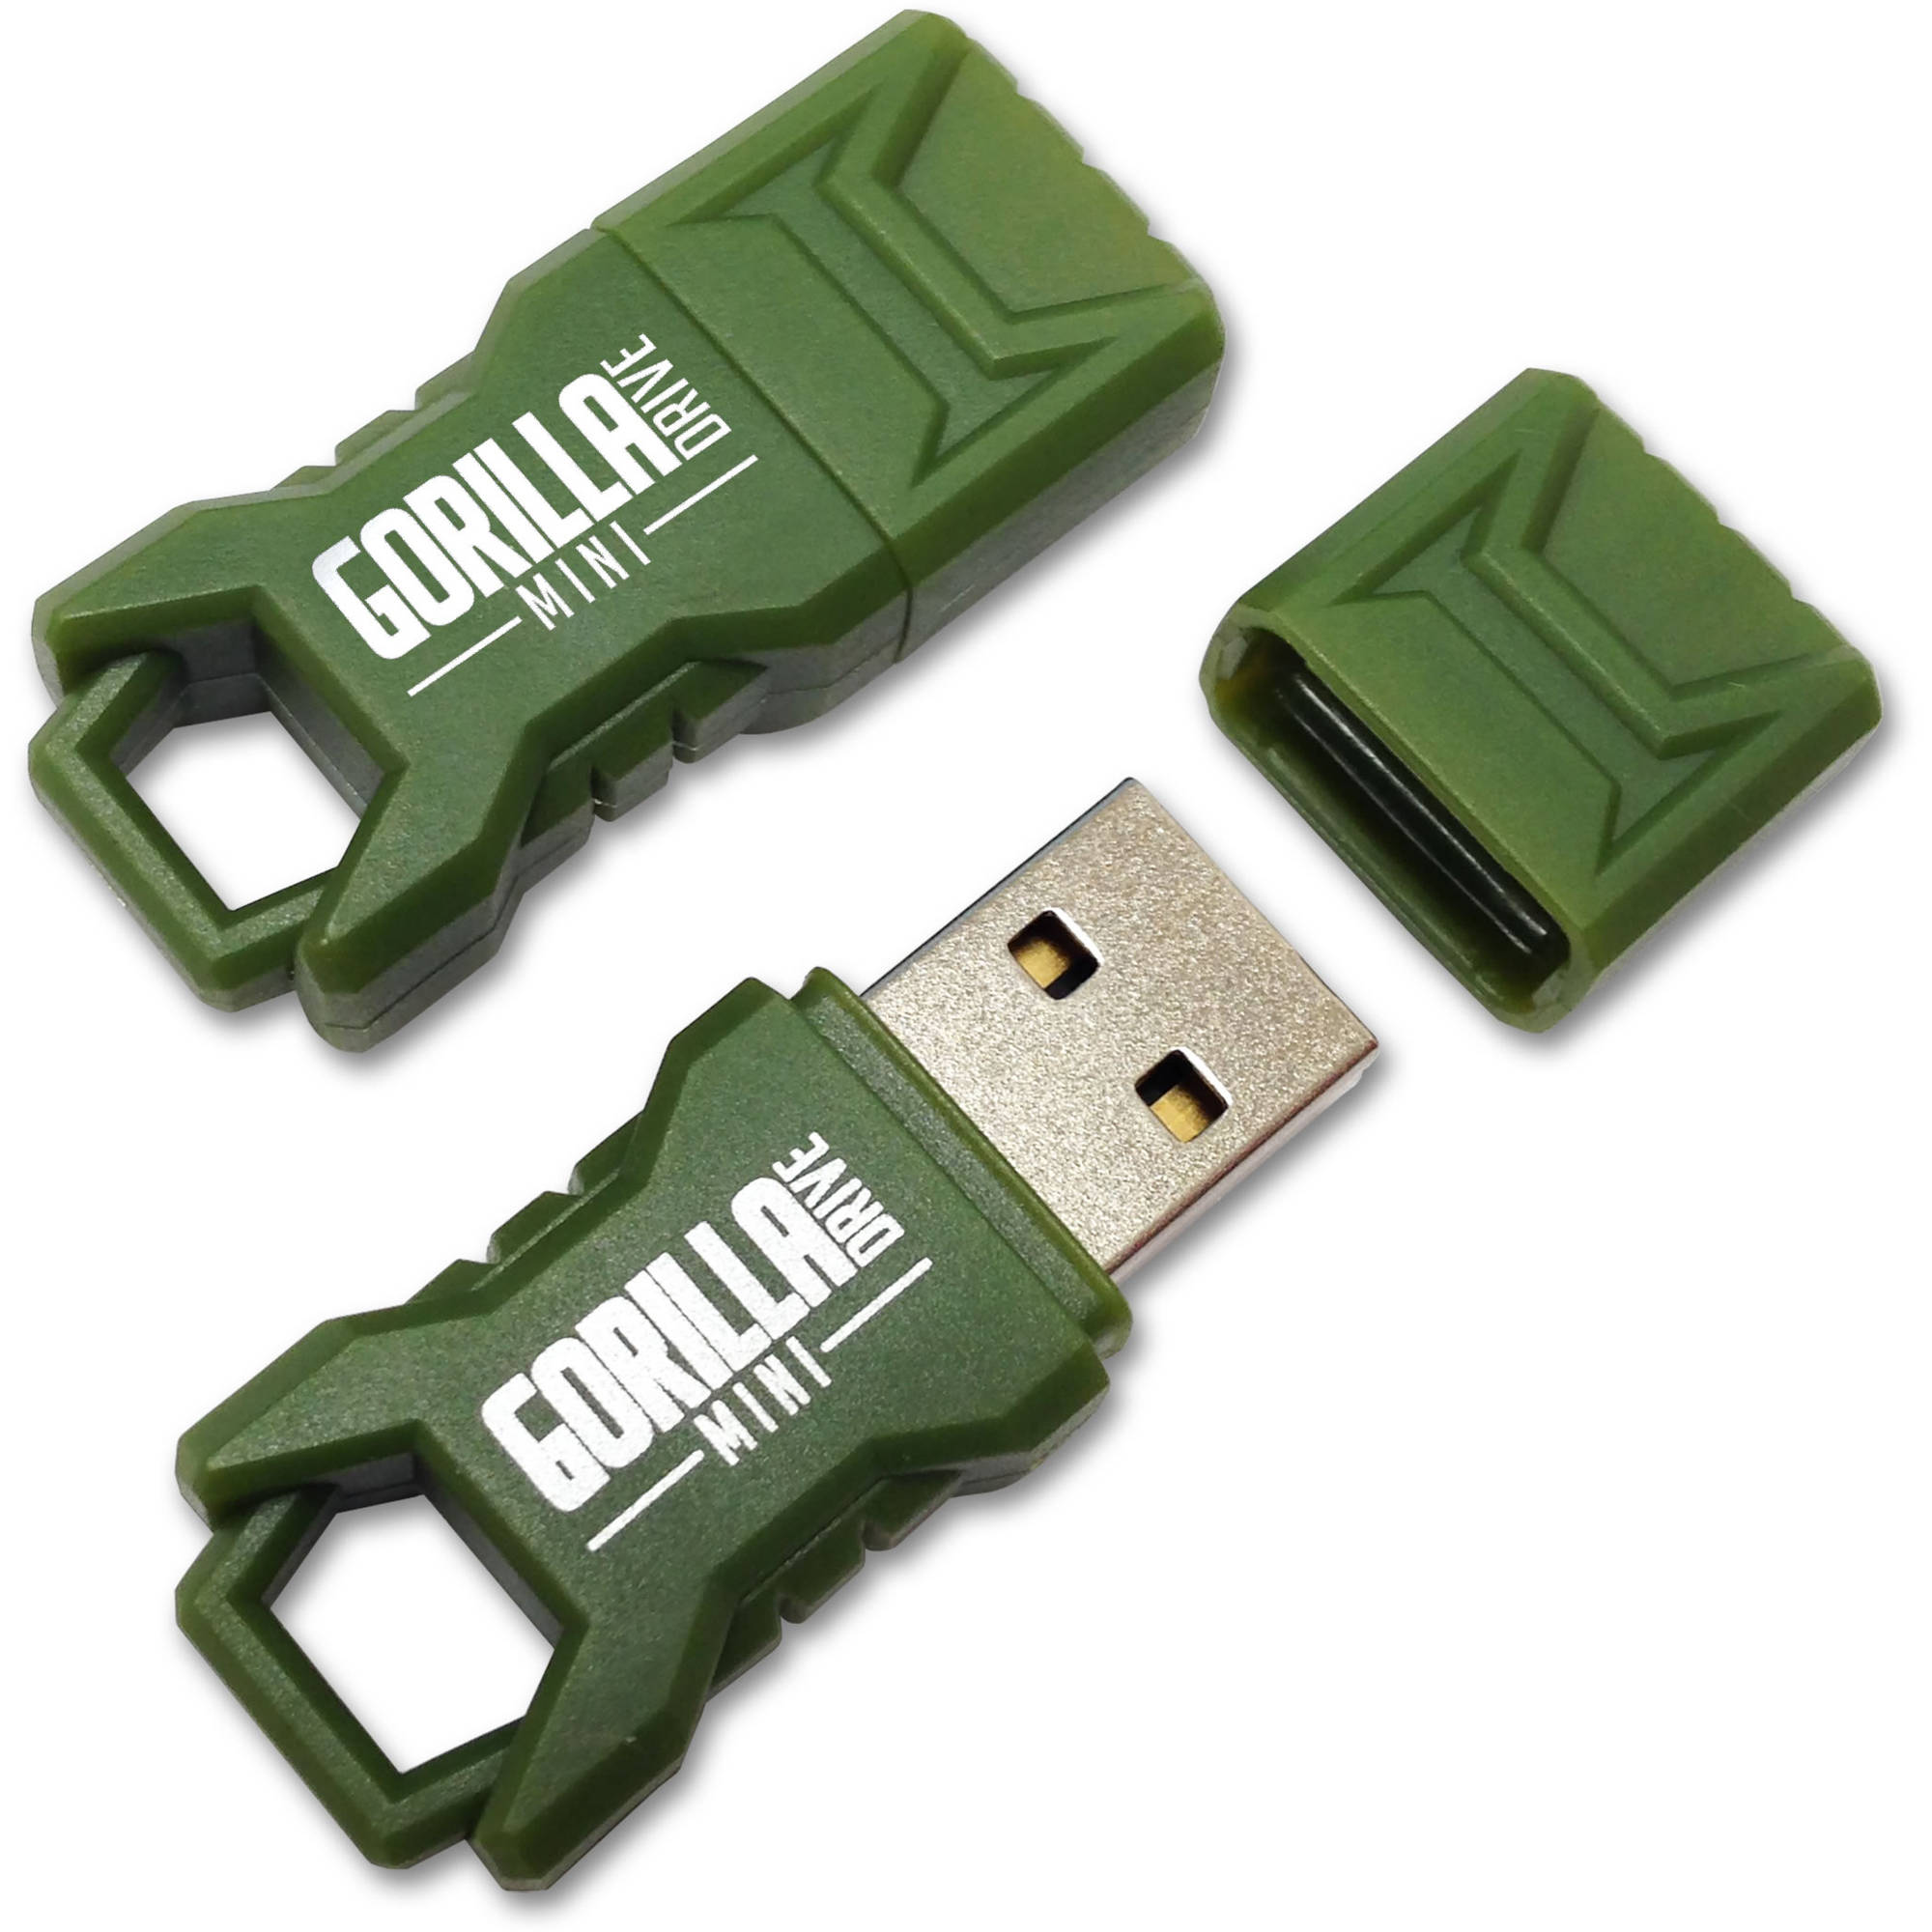 EP Green Mini GorillaDrive 128GB Rugged USB Flash Drive